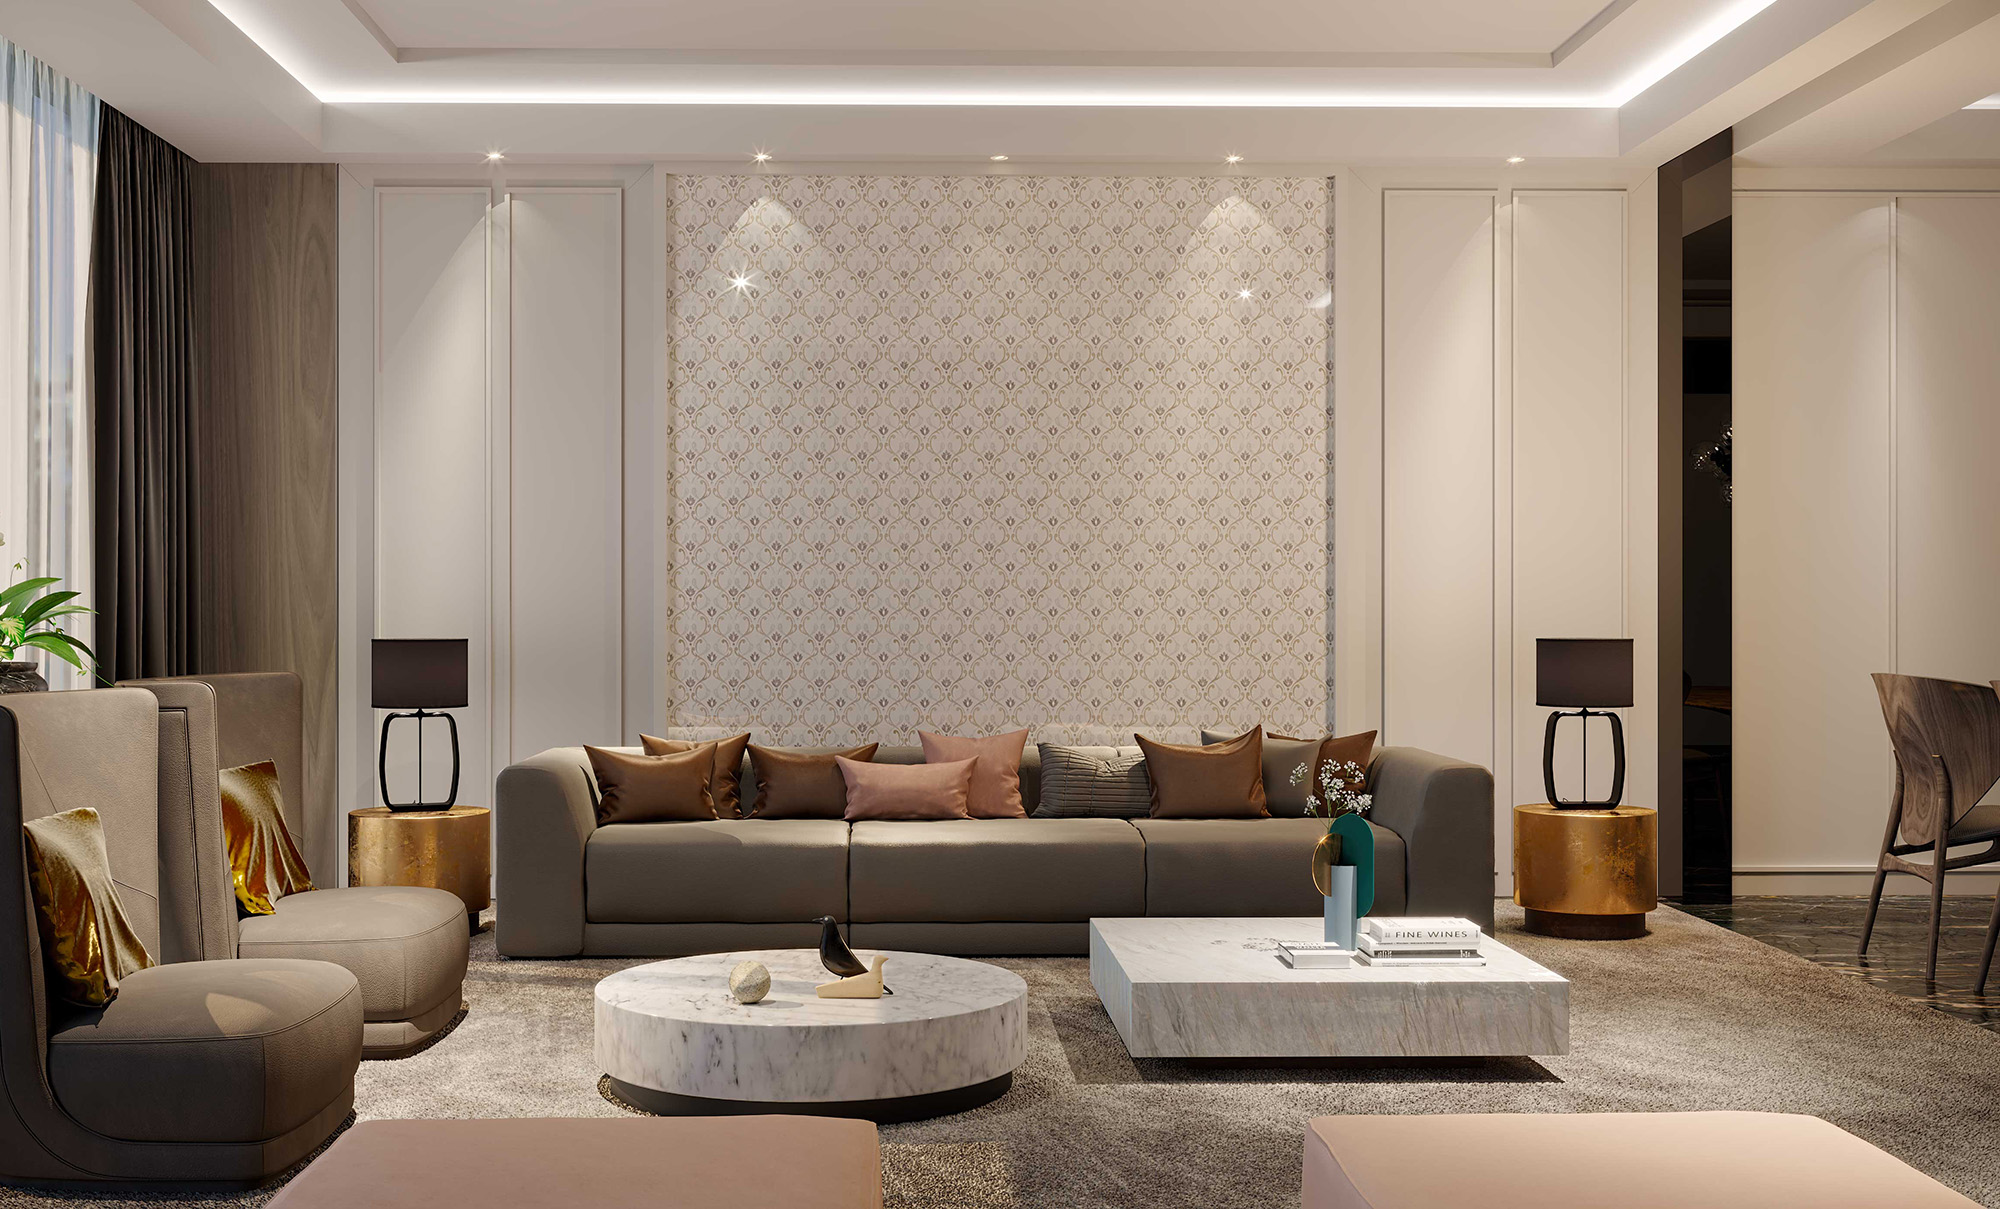 Luxurious livingroom marquetery gold mother of pearl